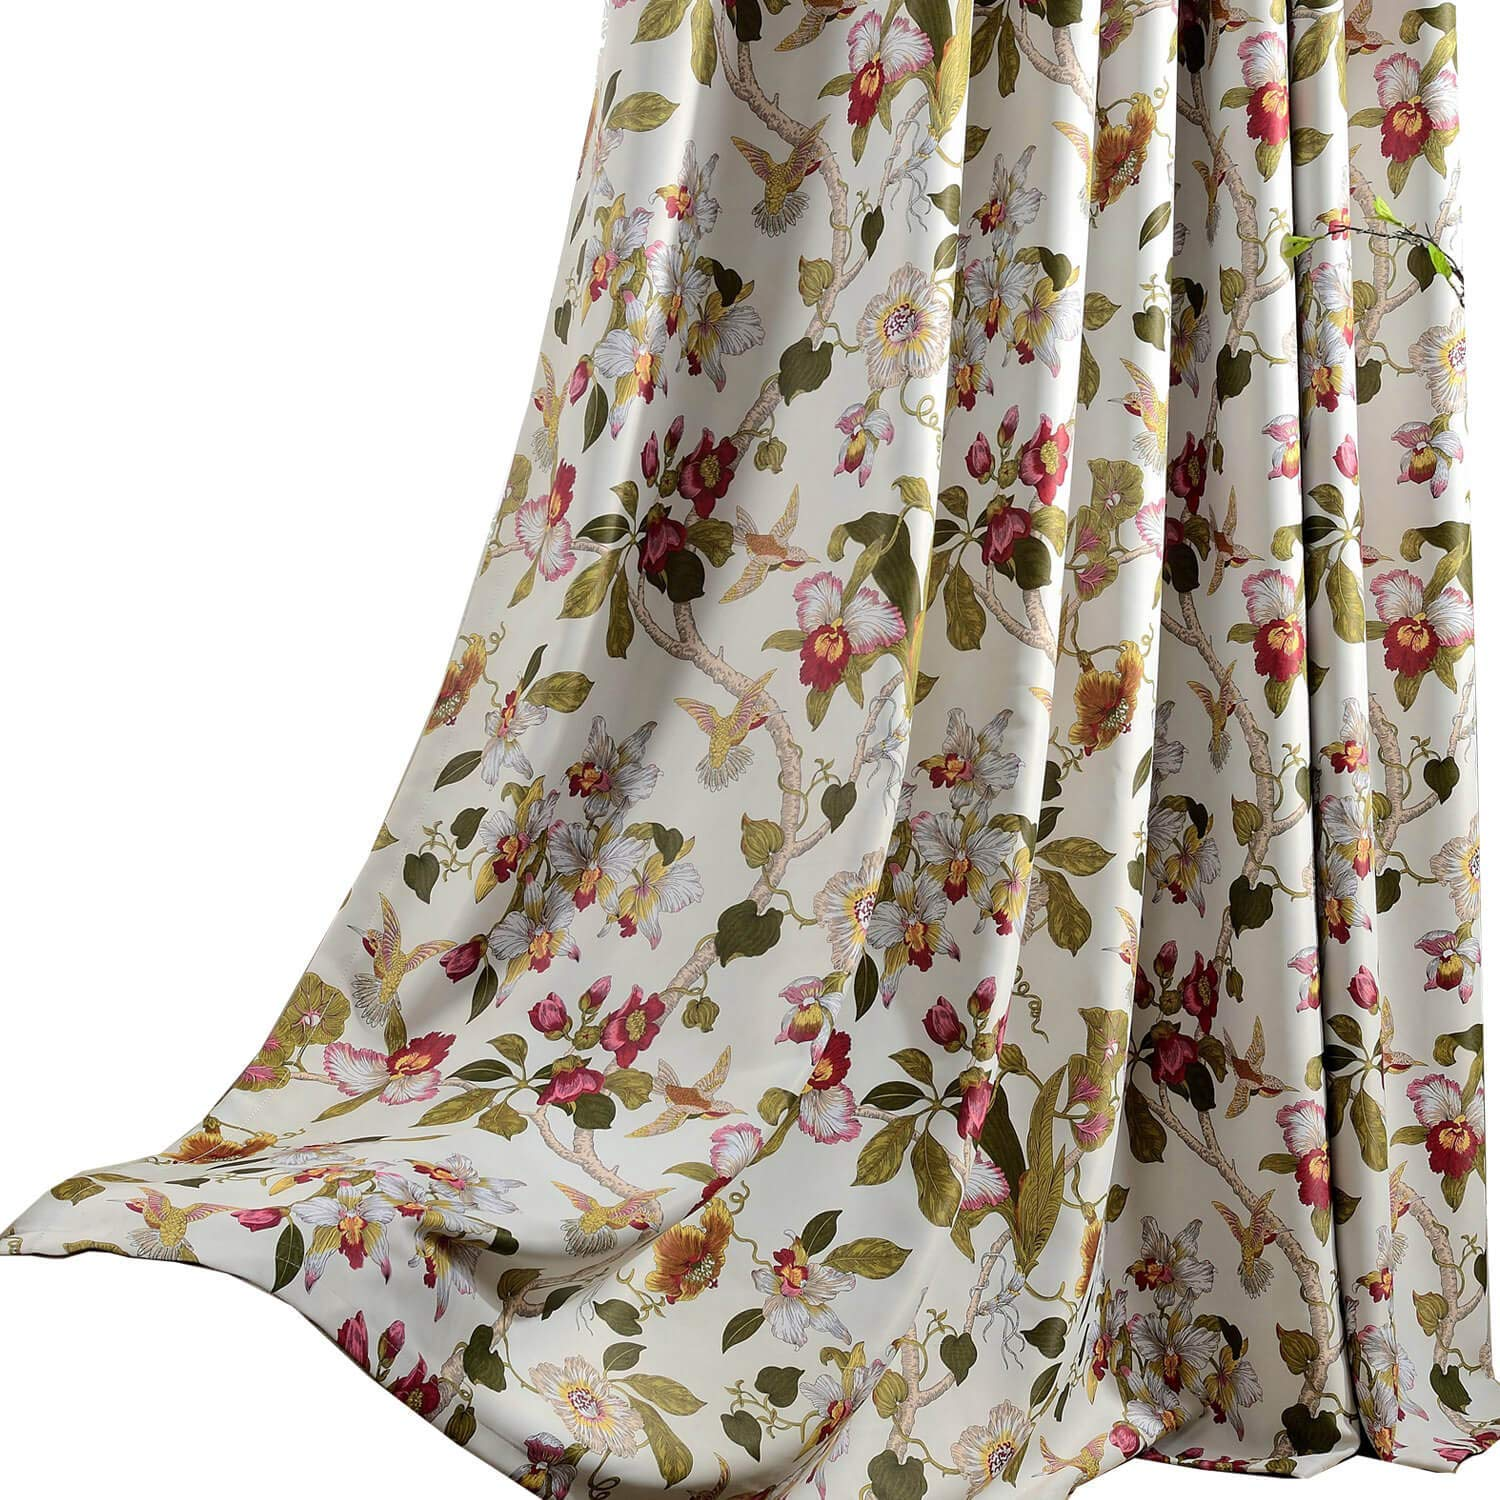 Blackout Flower Curtains for Bedroom - Anady 2 Panels Grommet Top Short Curtains Red Floral Drapes for Canada 63 inch Long BCZBZBirdGT4263